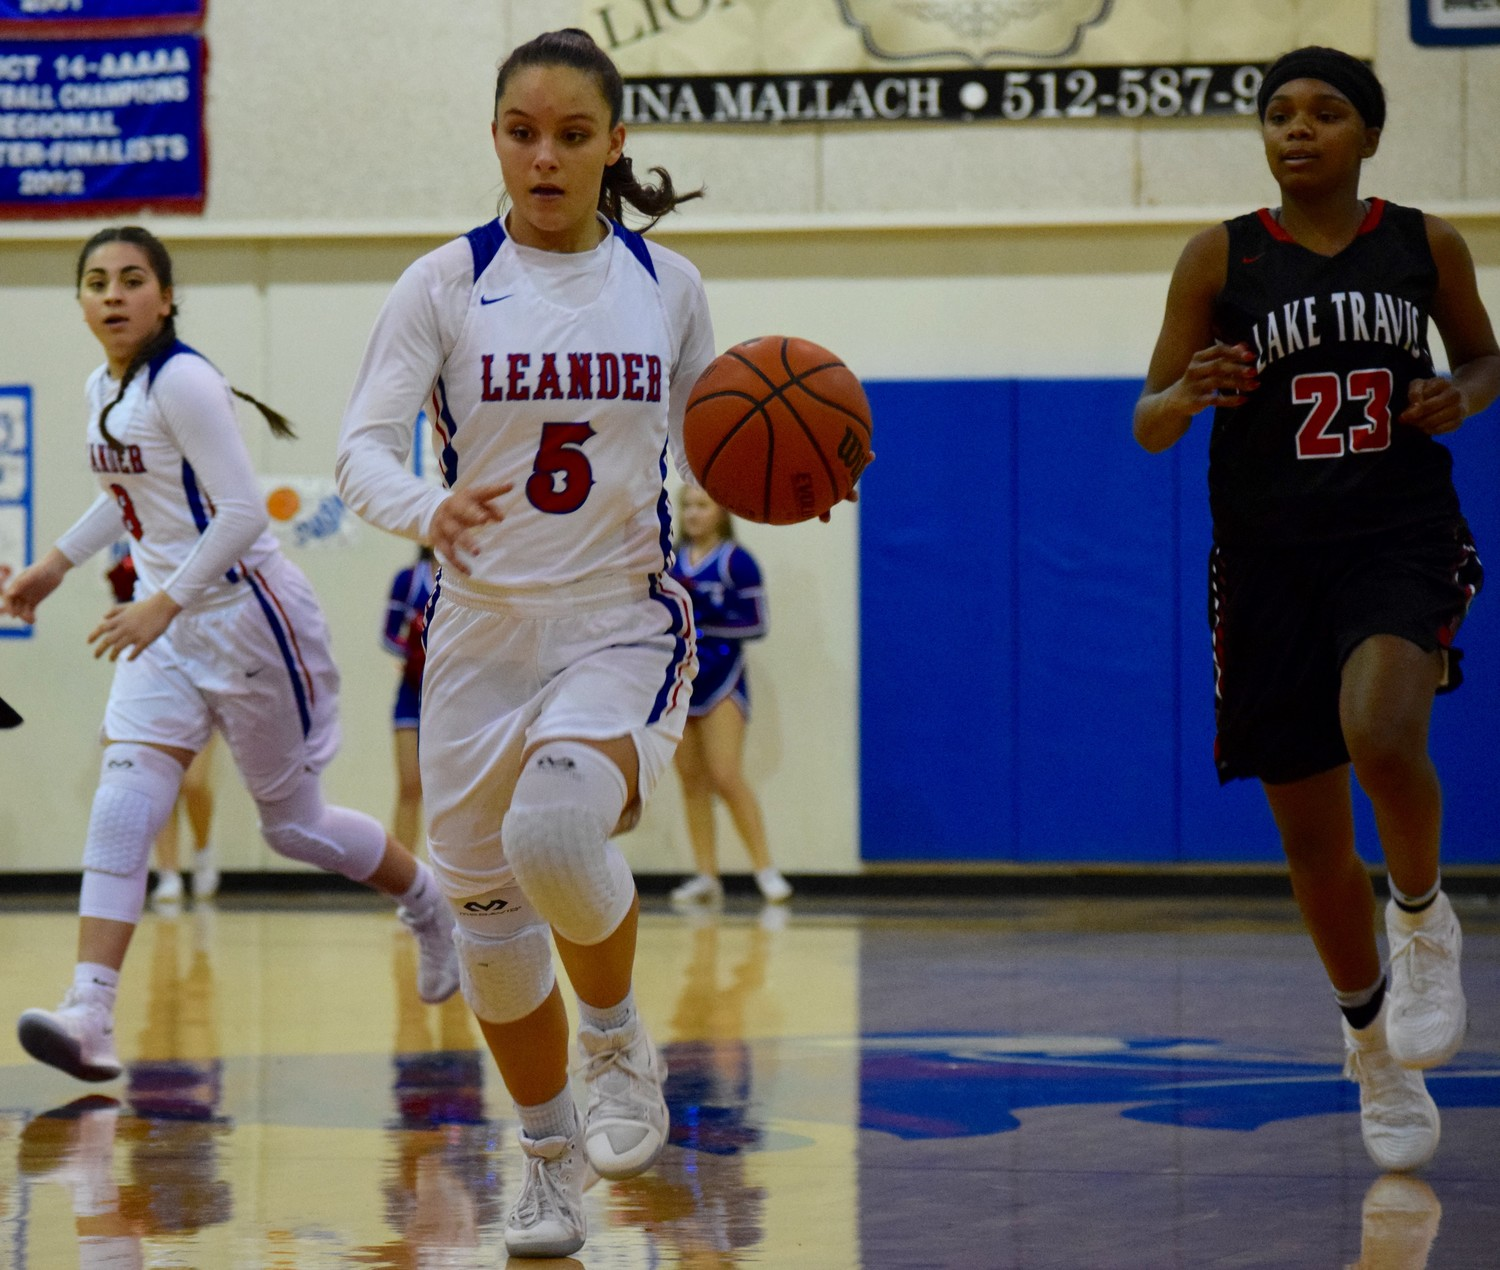 Mikaela Noe and Leander lost to Lake Travis 40-26 on Tuesday night.